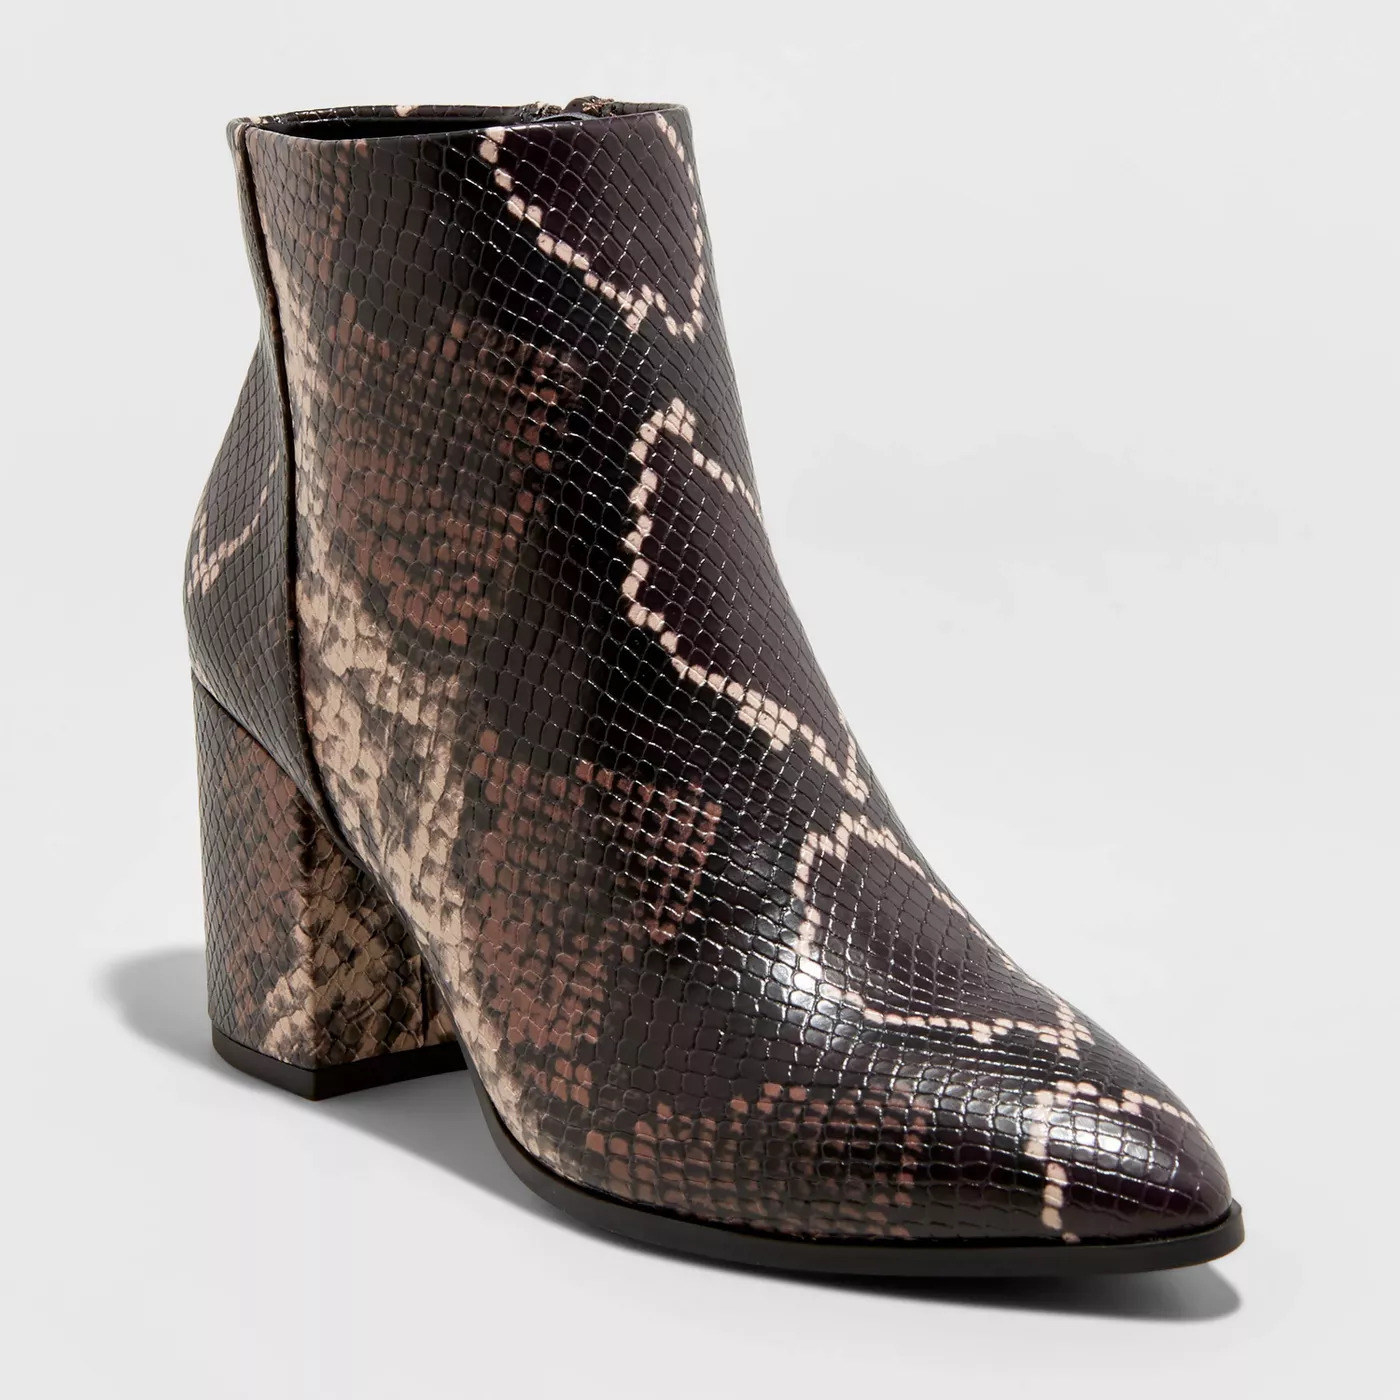 Brown beige and black snakeskin ankle boots with a block heel and pointed toe